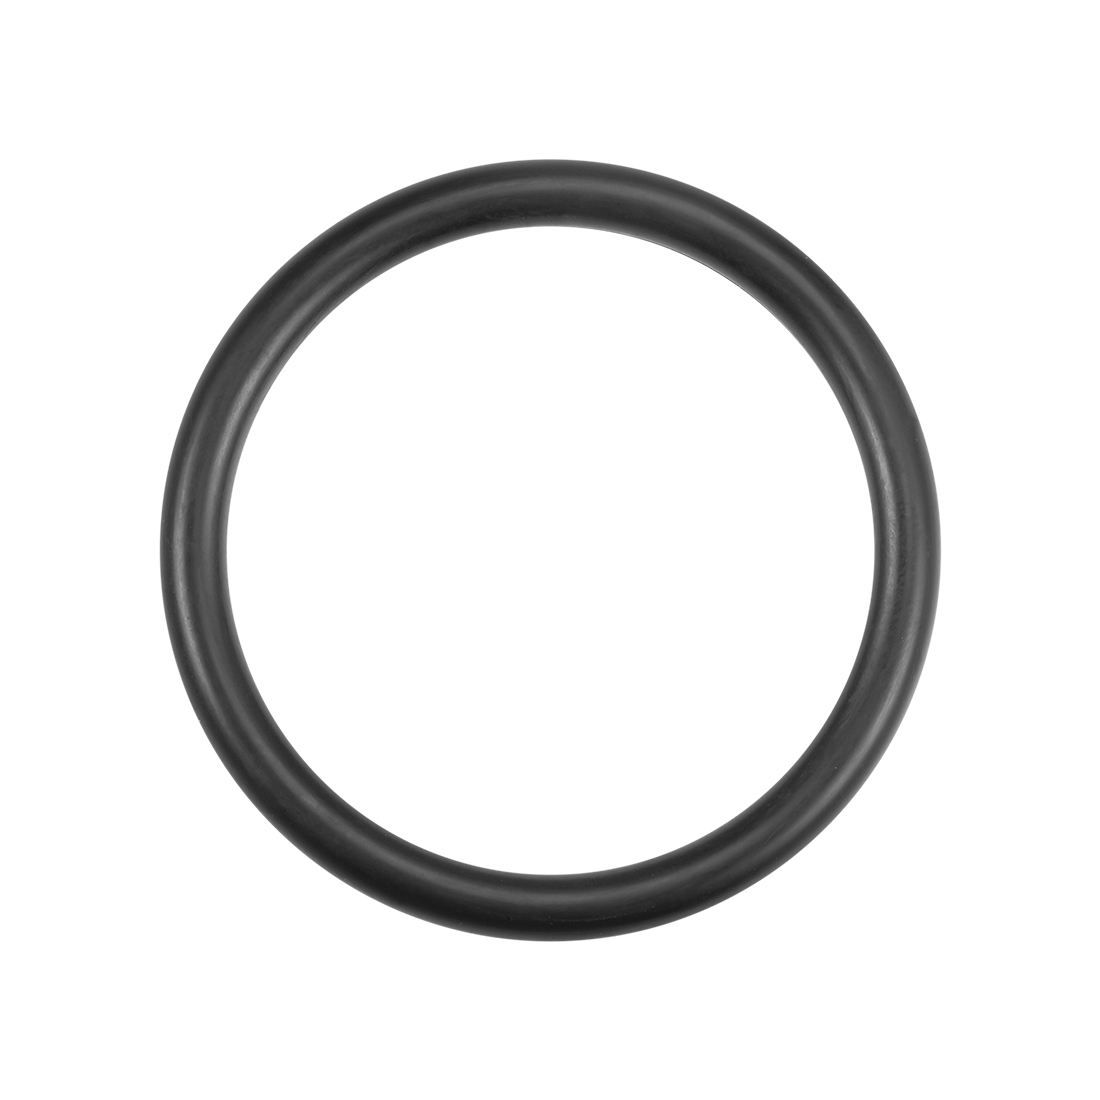 O-Rings Nitrile Rubber 35mm x 43mm x 4mm Round Seal Gasket